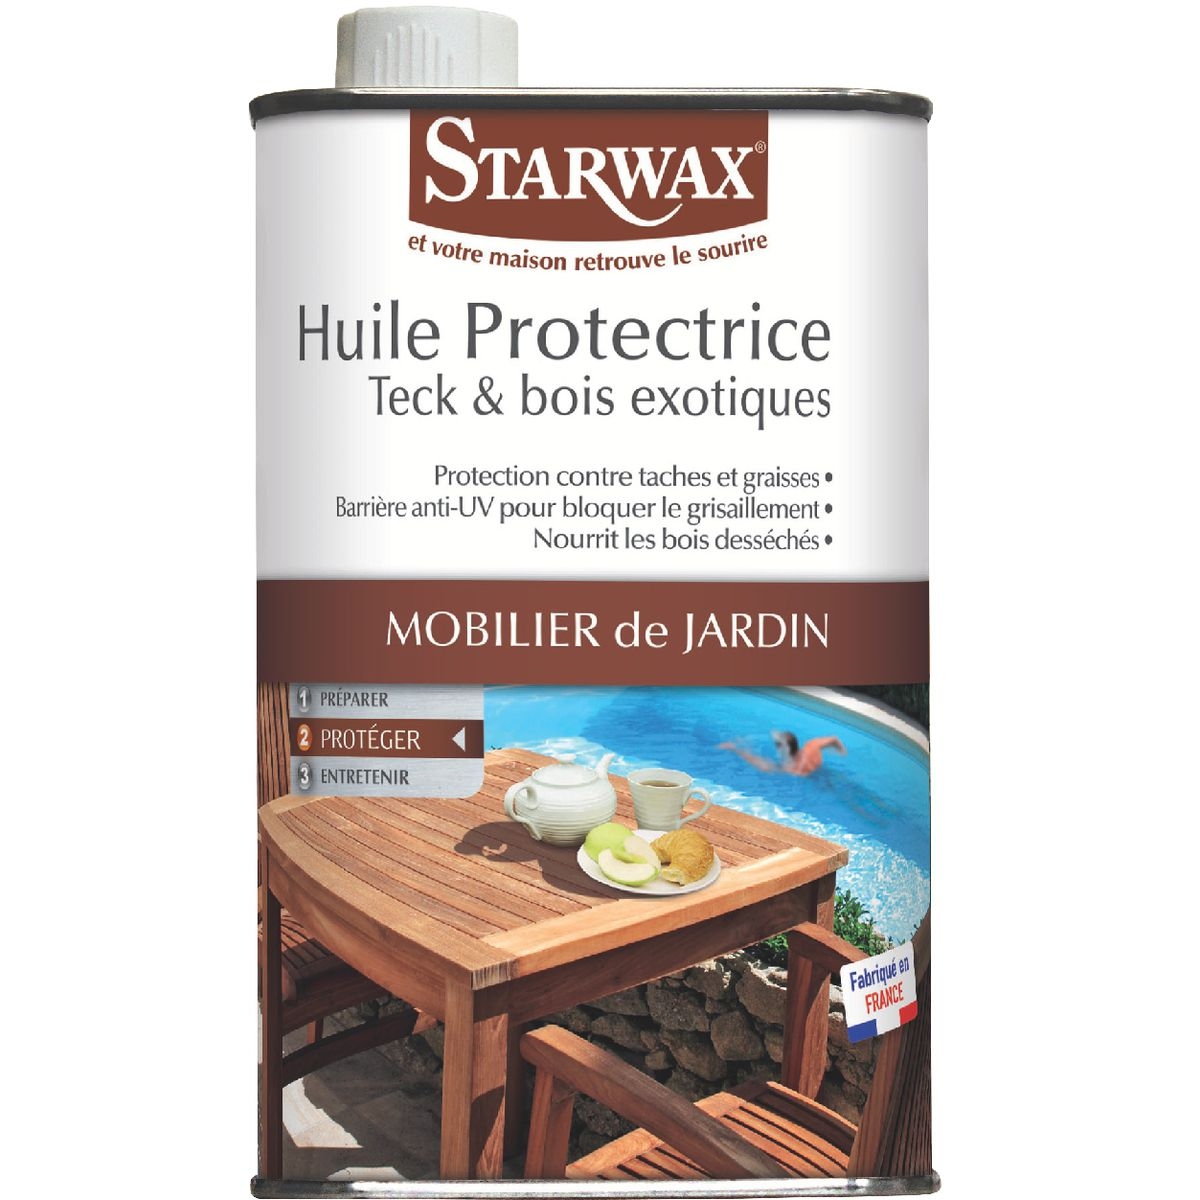 Huile protectrice teck-bois exotique Starwax